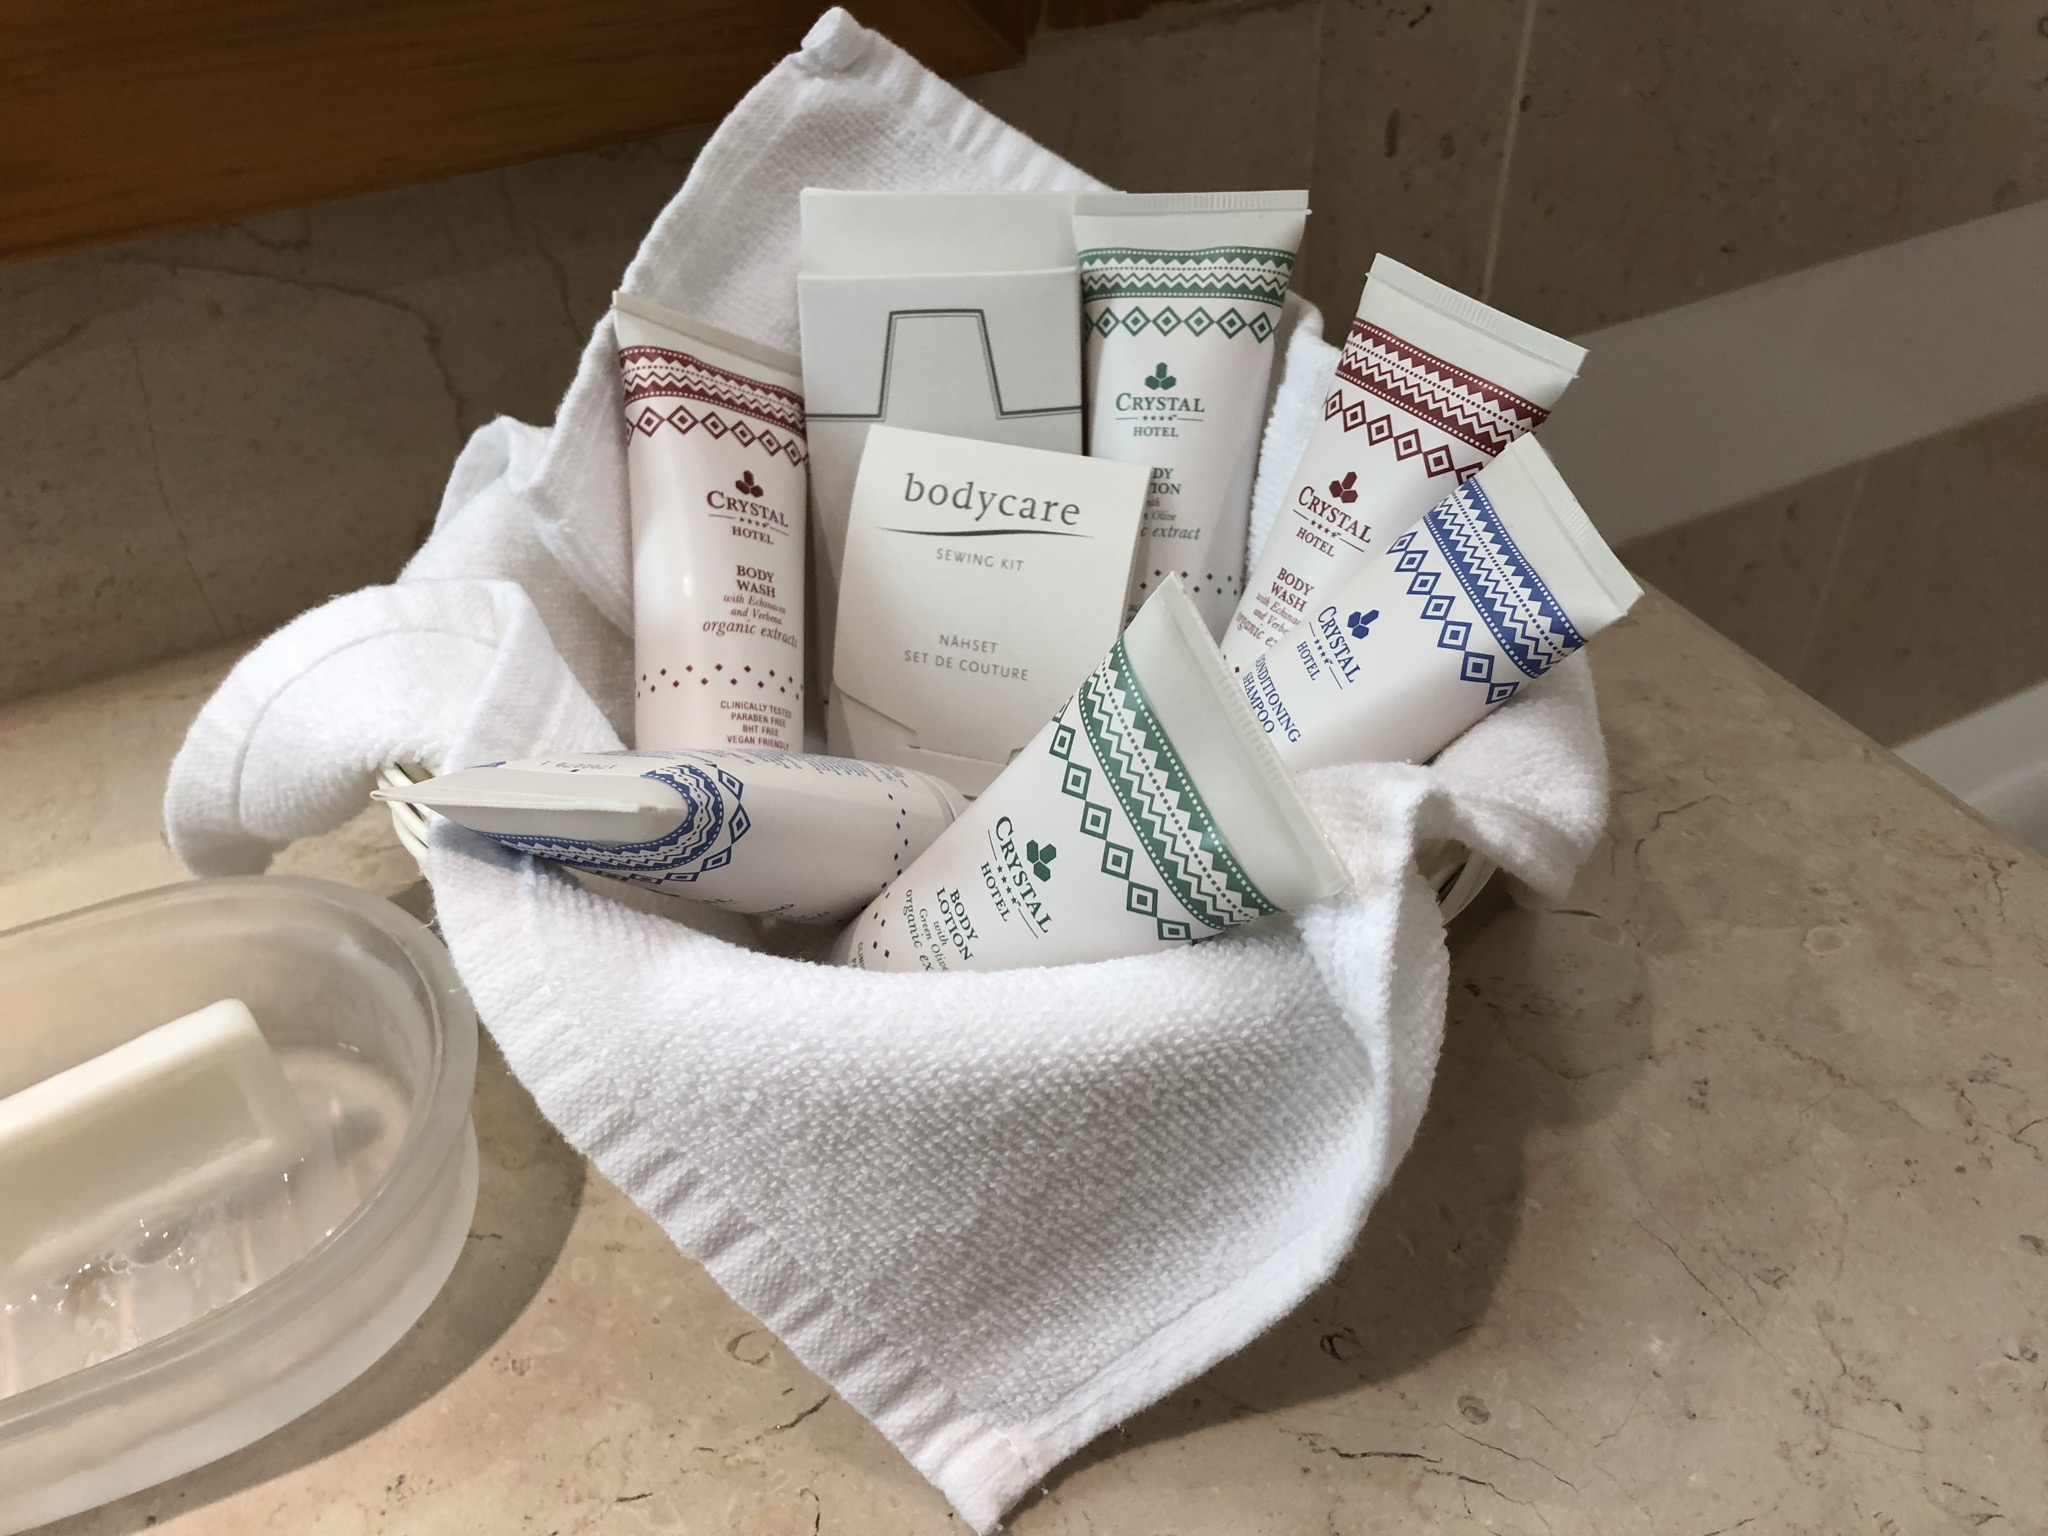 New rule: 5-star hotels have expensive brands as amenities while 4-star hotels have their private label brand